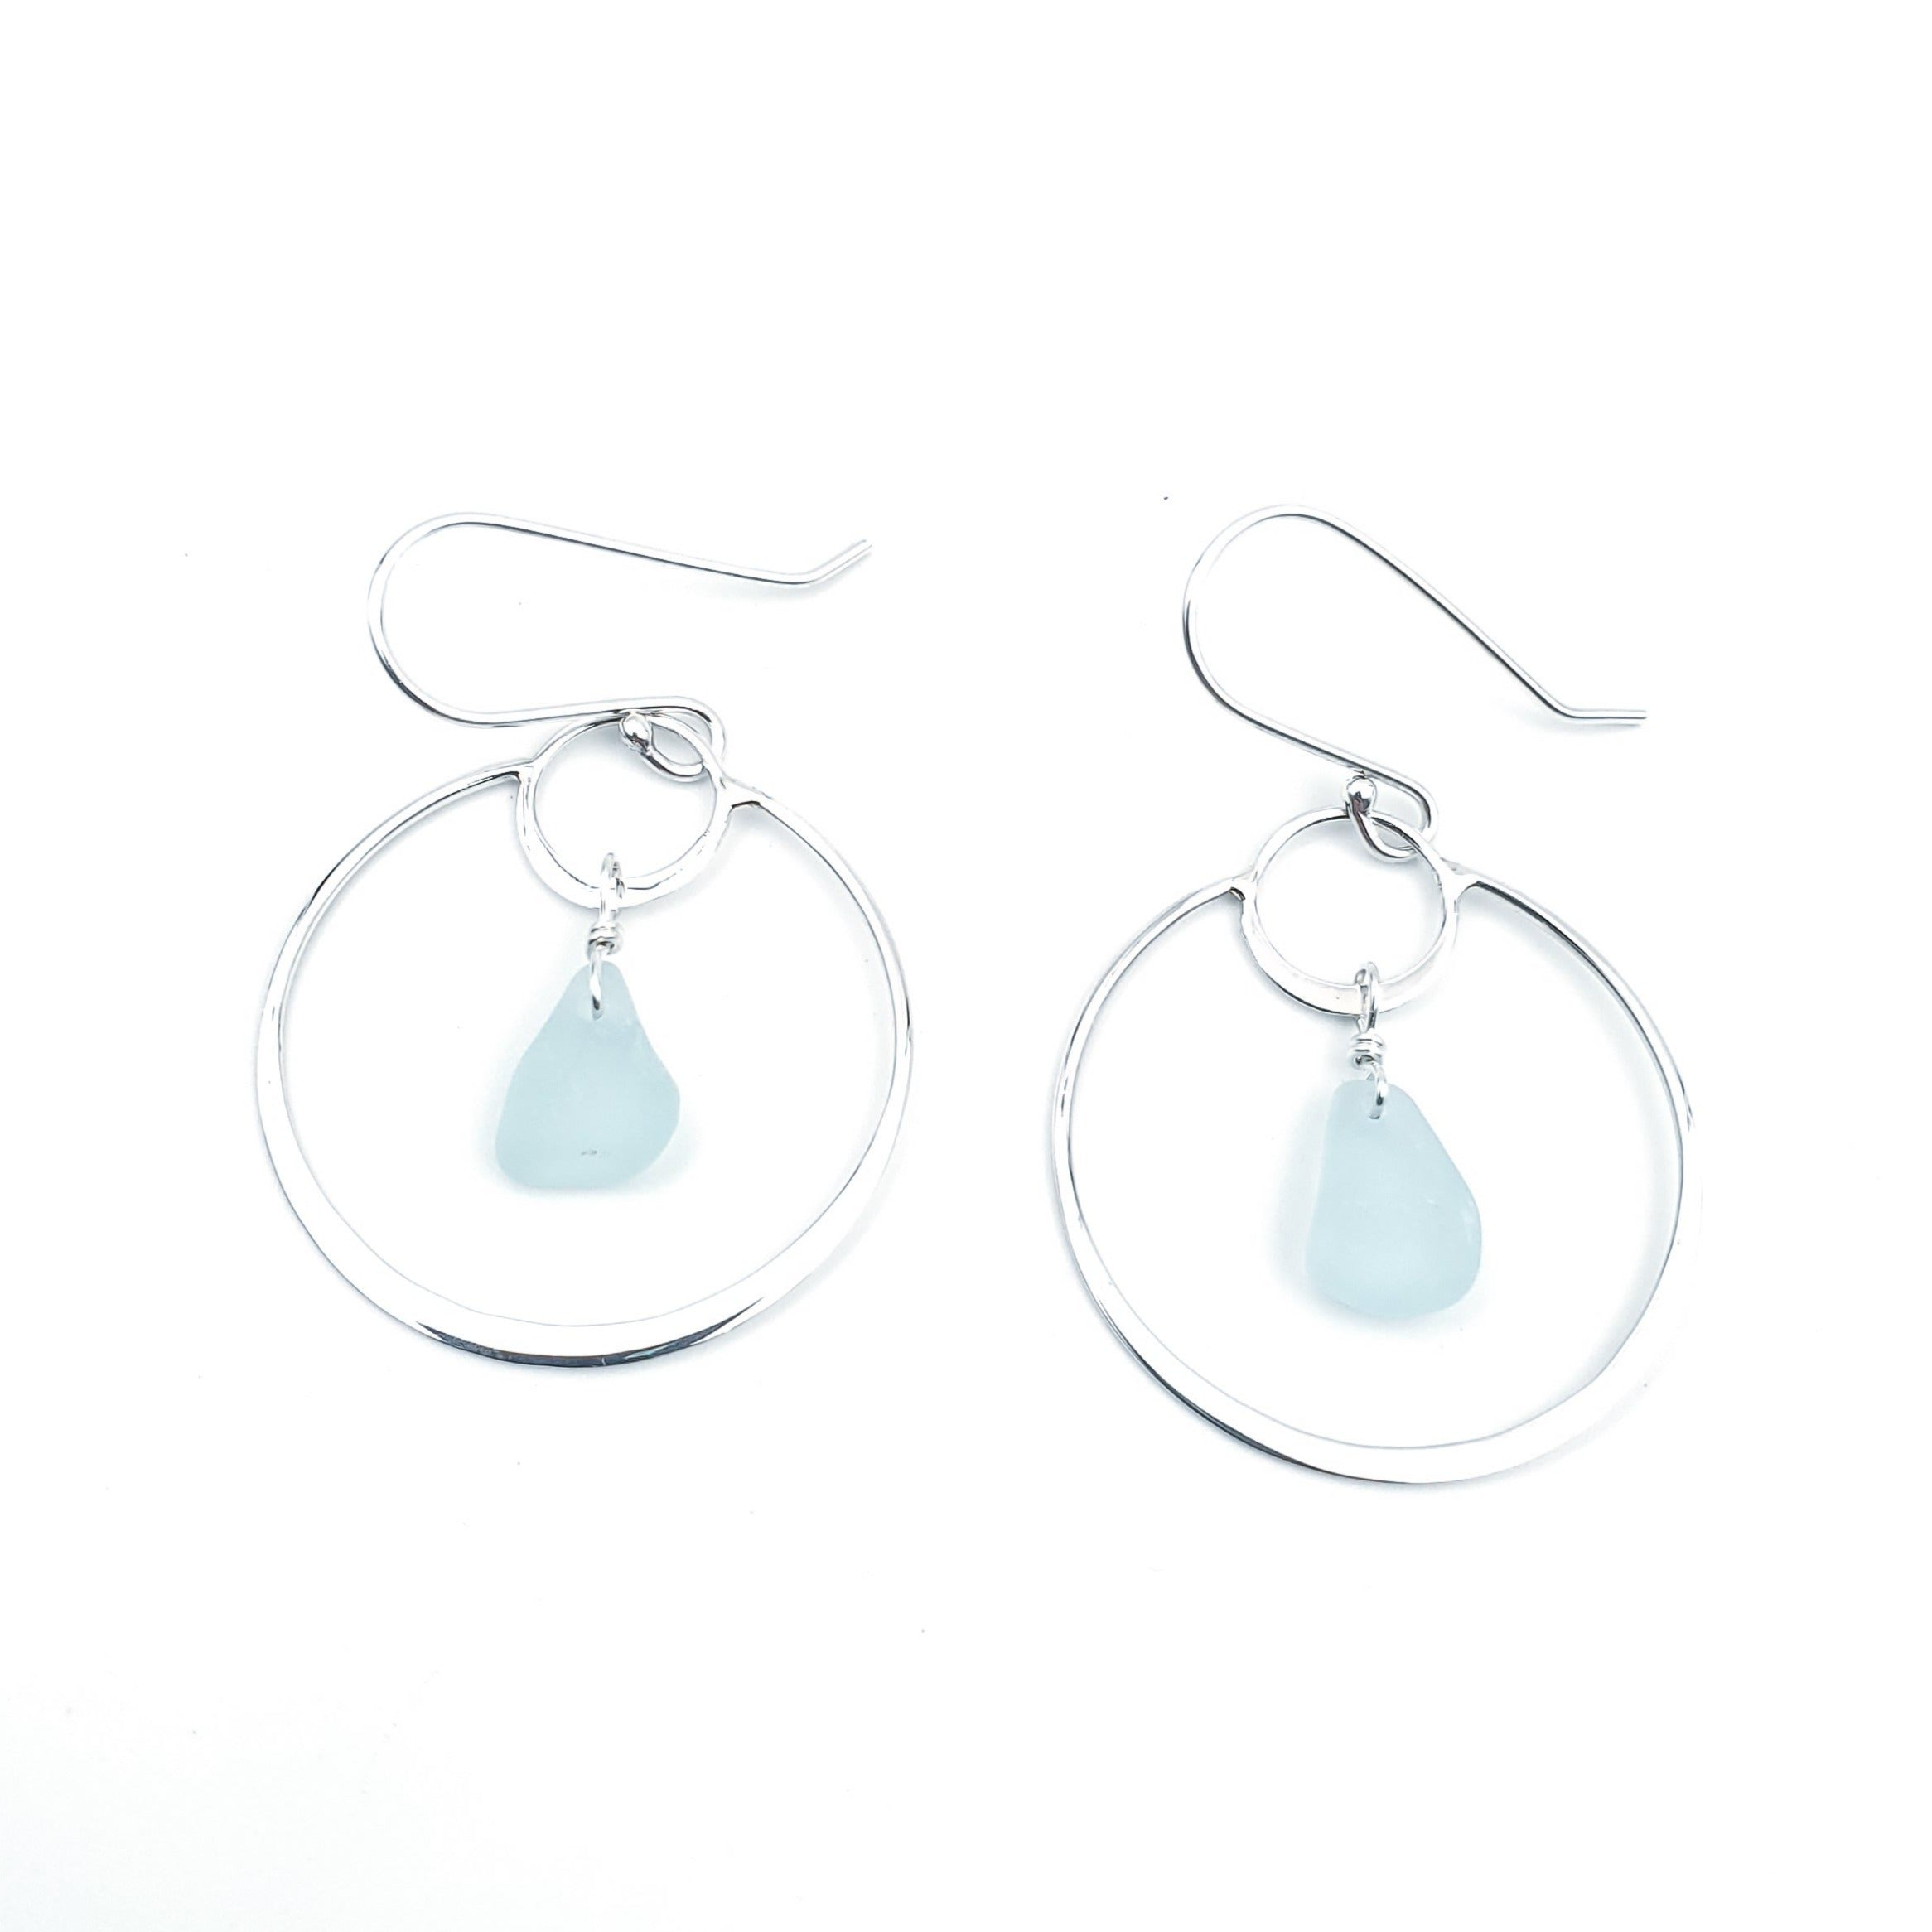 Small circle inside larger circle silver earrings with aqua sea glass inside